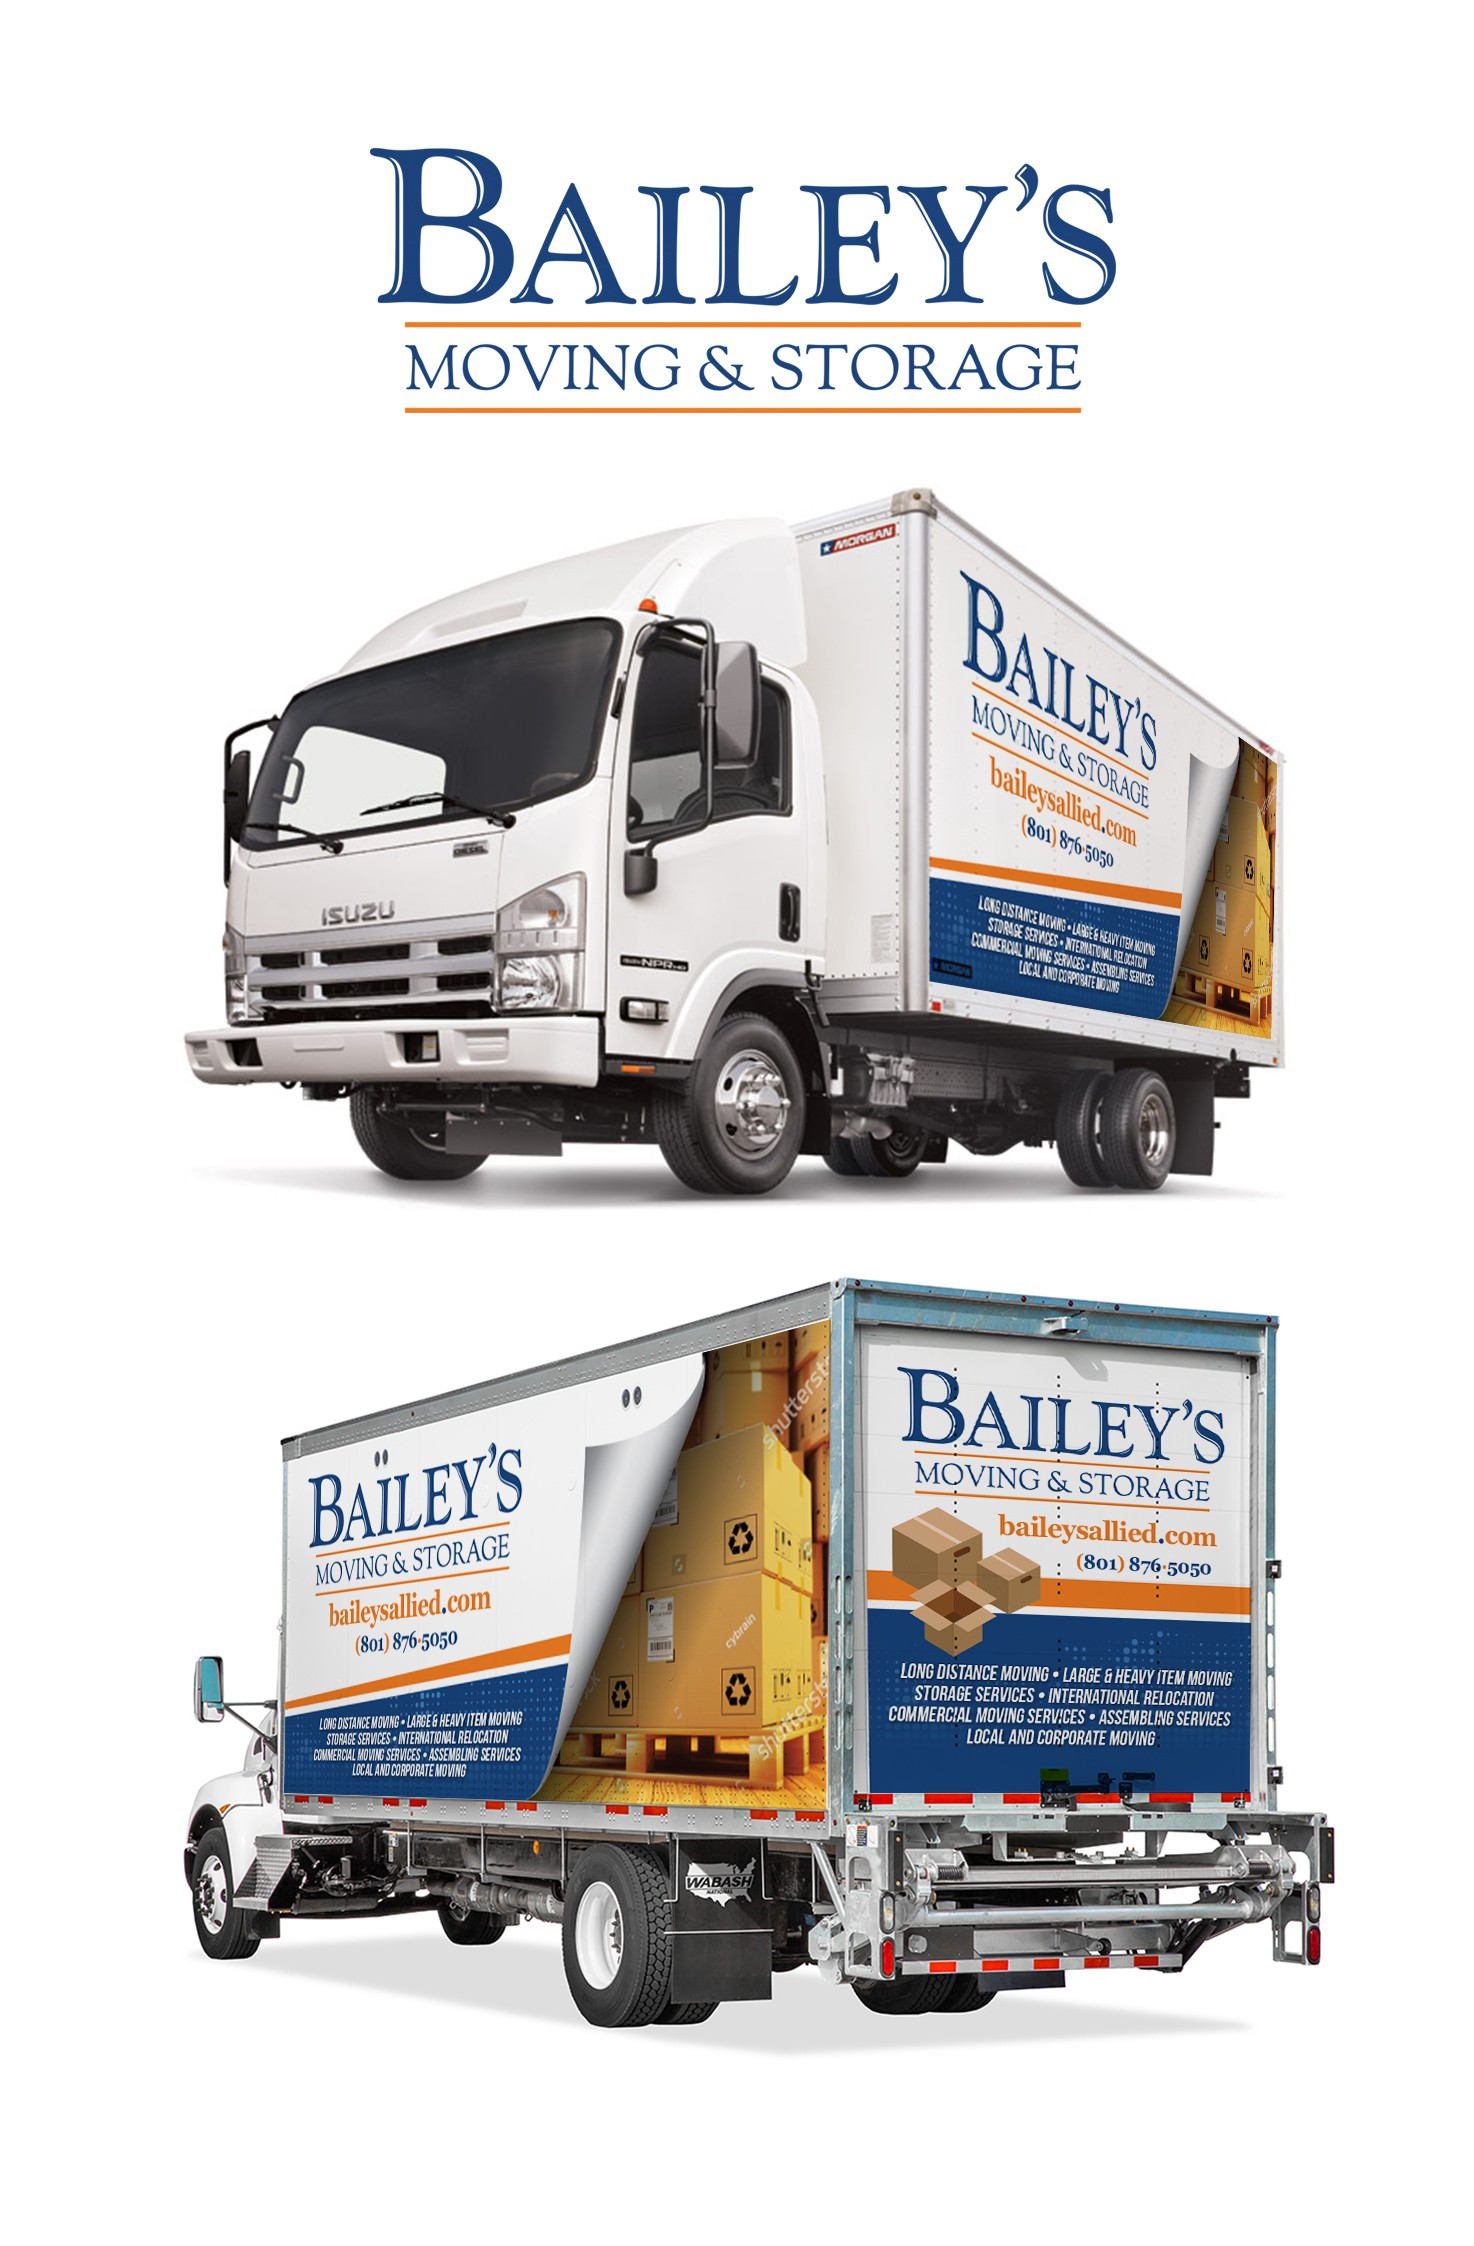 Large National Moving Company Needs New Box Truck Wrap